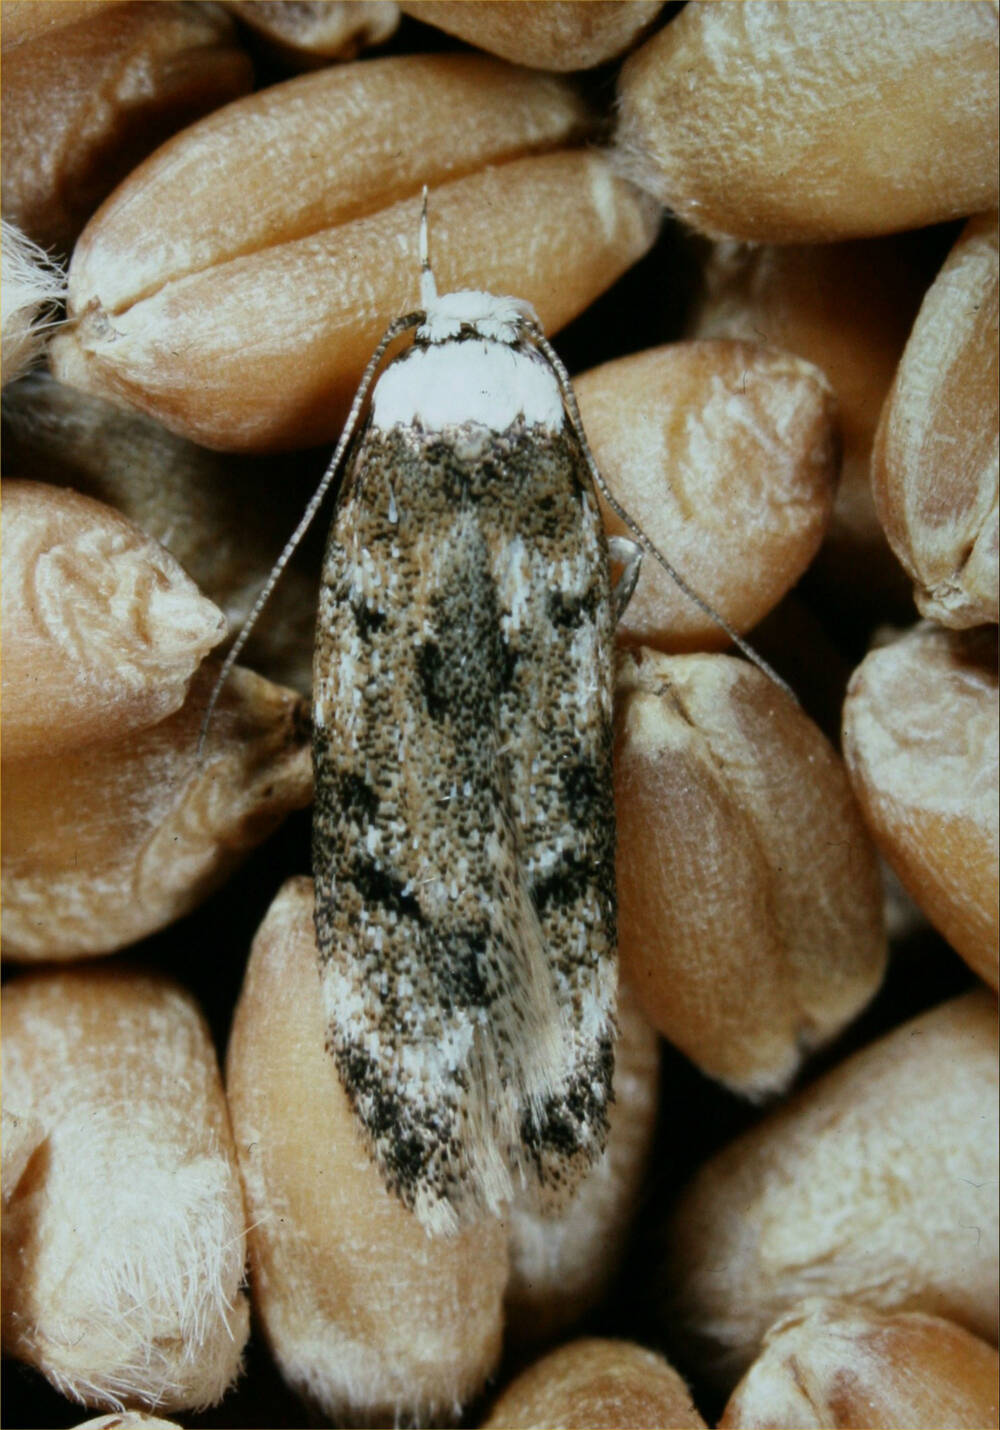 A white-shouldered moth sitting on some grain